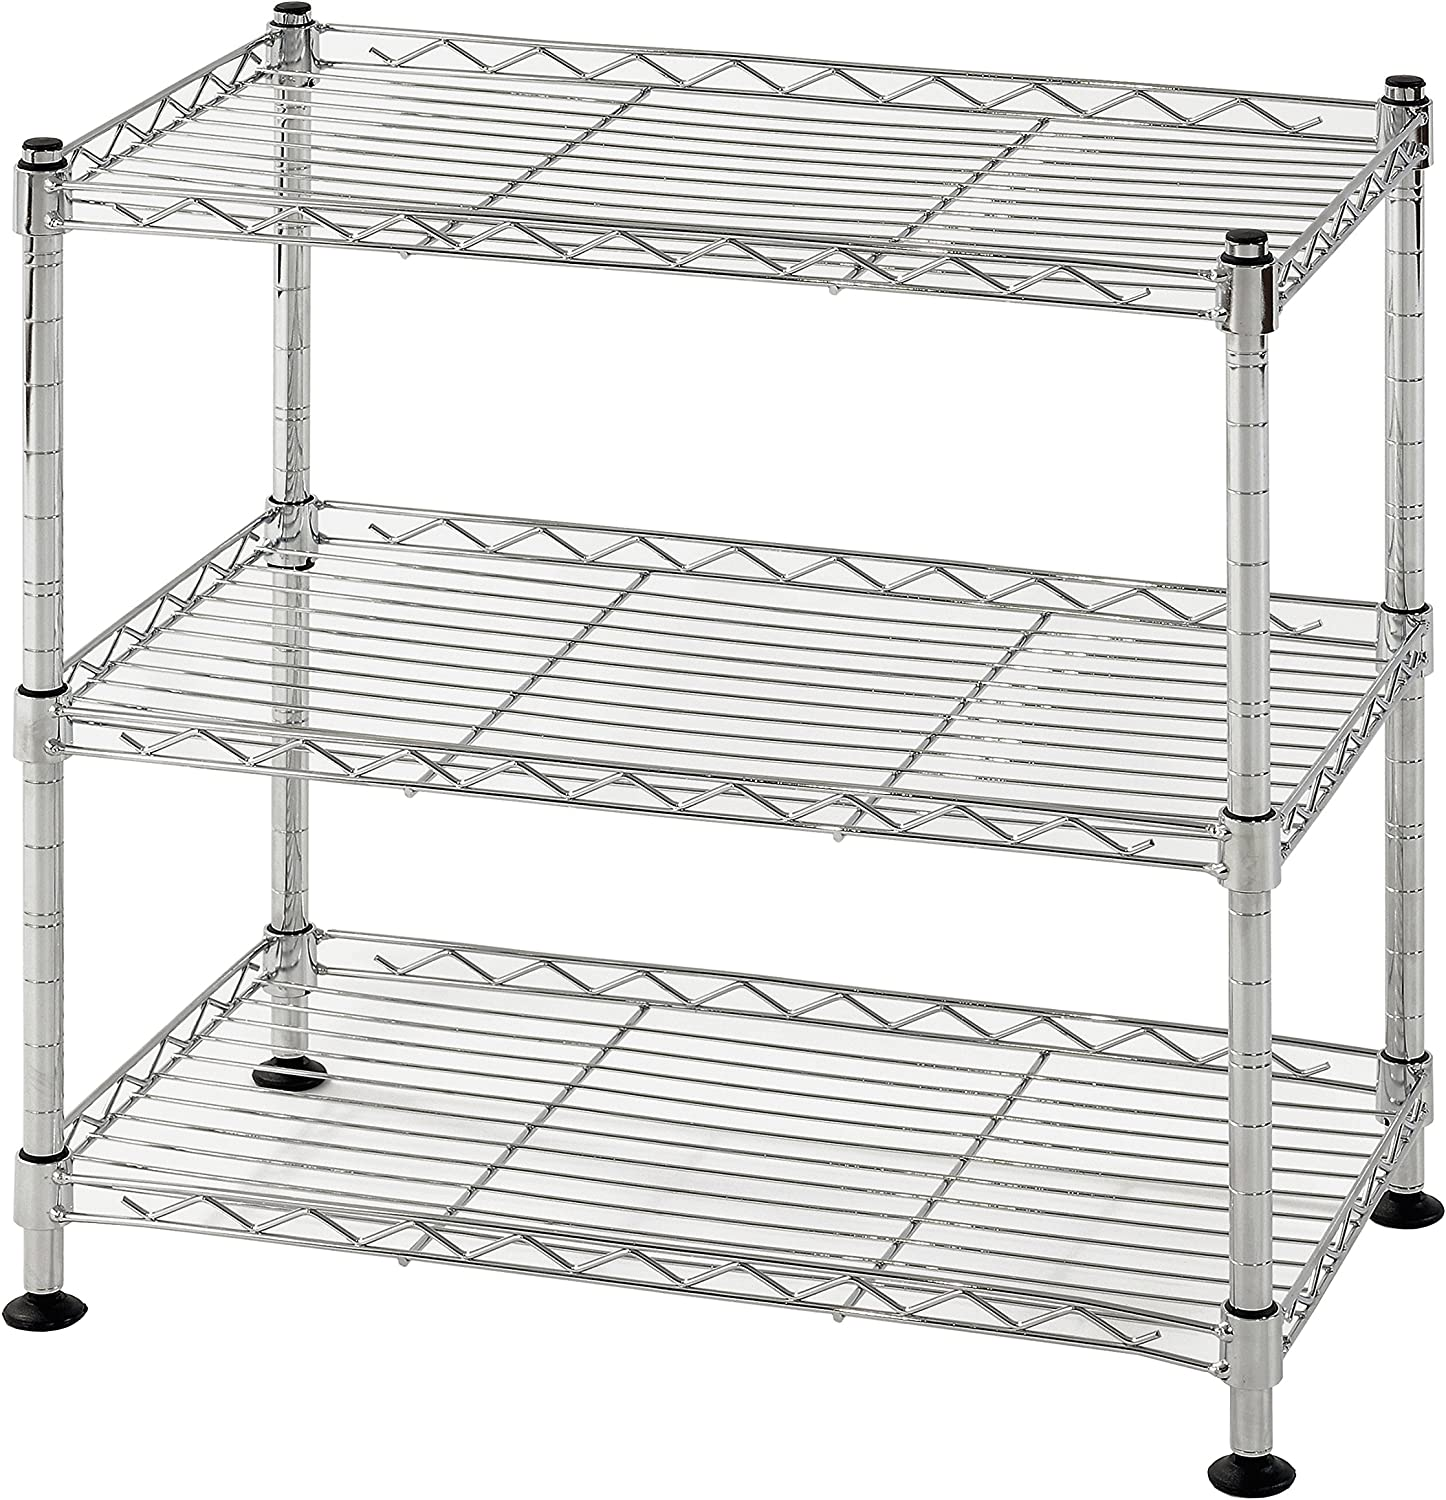 """Muscle Rack WS181018-C Steel Adjustable Wire Shelving, 3 Shelves, Chrome, 18"""" Height, 18"""" Width, 264 lb. Load Capacity"""